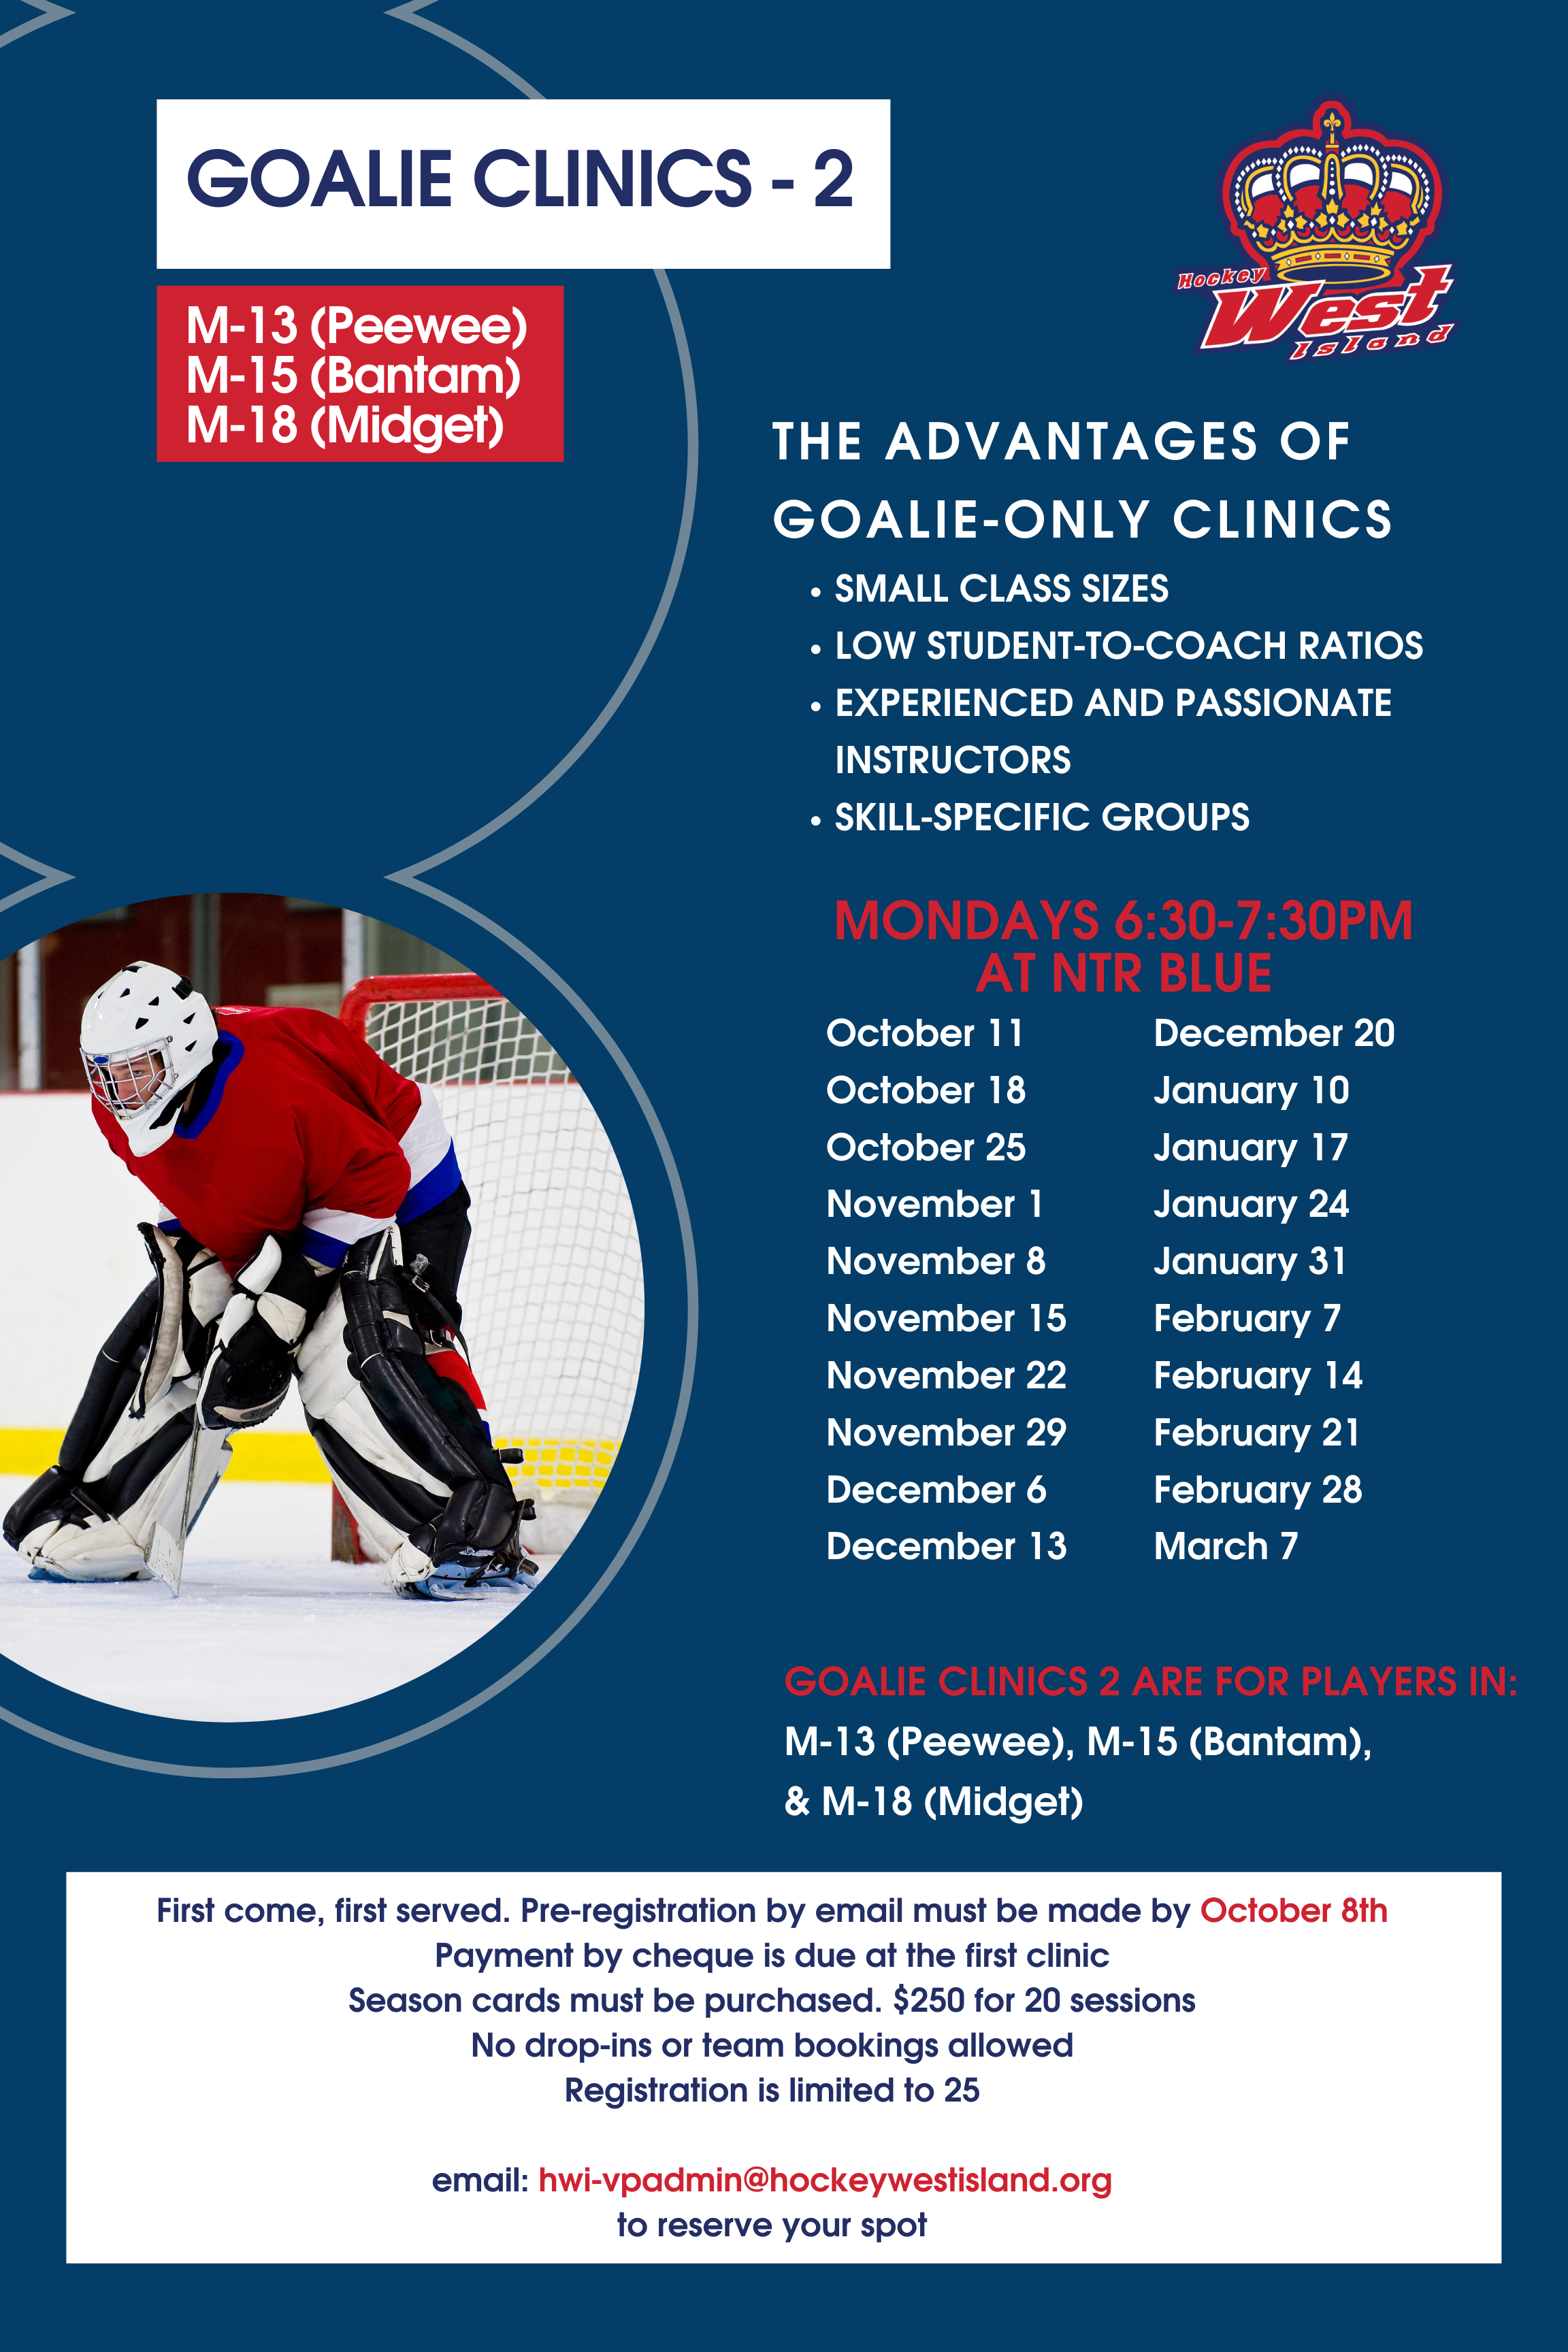 https://www.hockeywestisland.org/wp-content/uploads/2021/10/Goalie-Clinics-2-M13-and-M15-and-M18-2-1.png